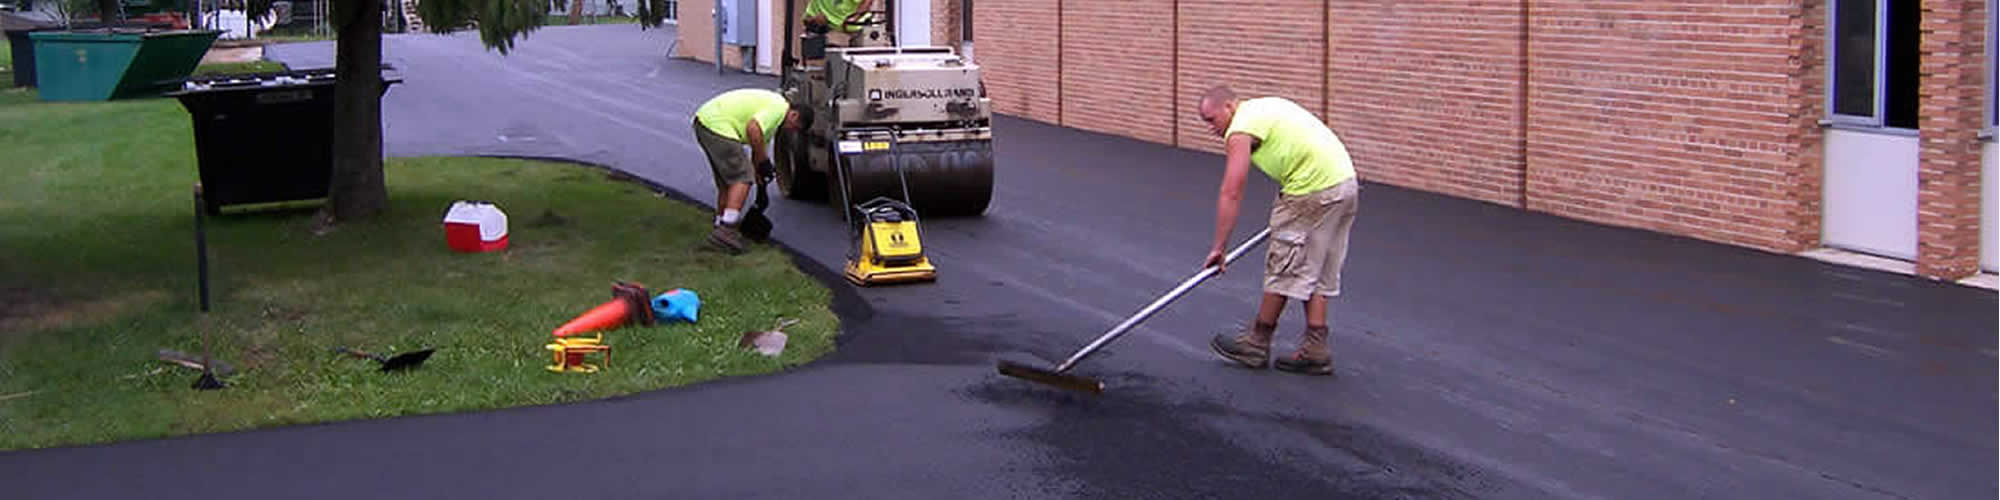 Aspalt Paving Services near me